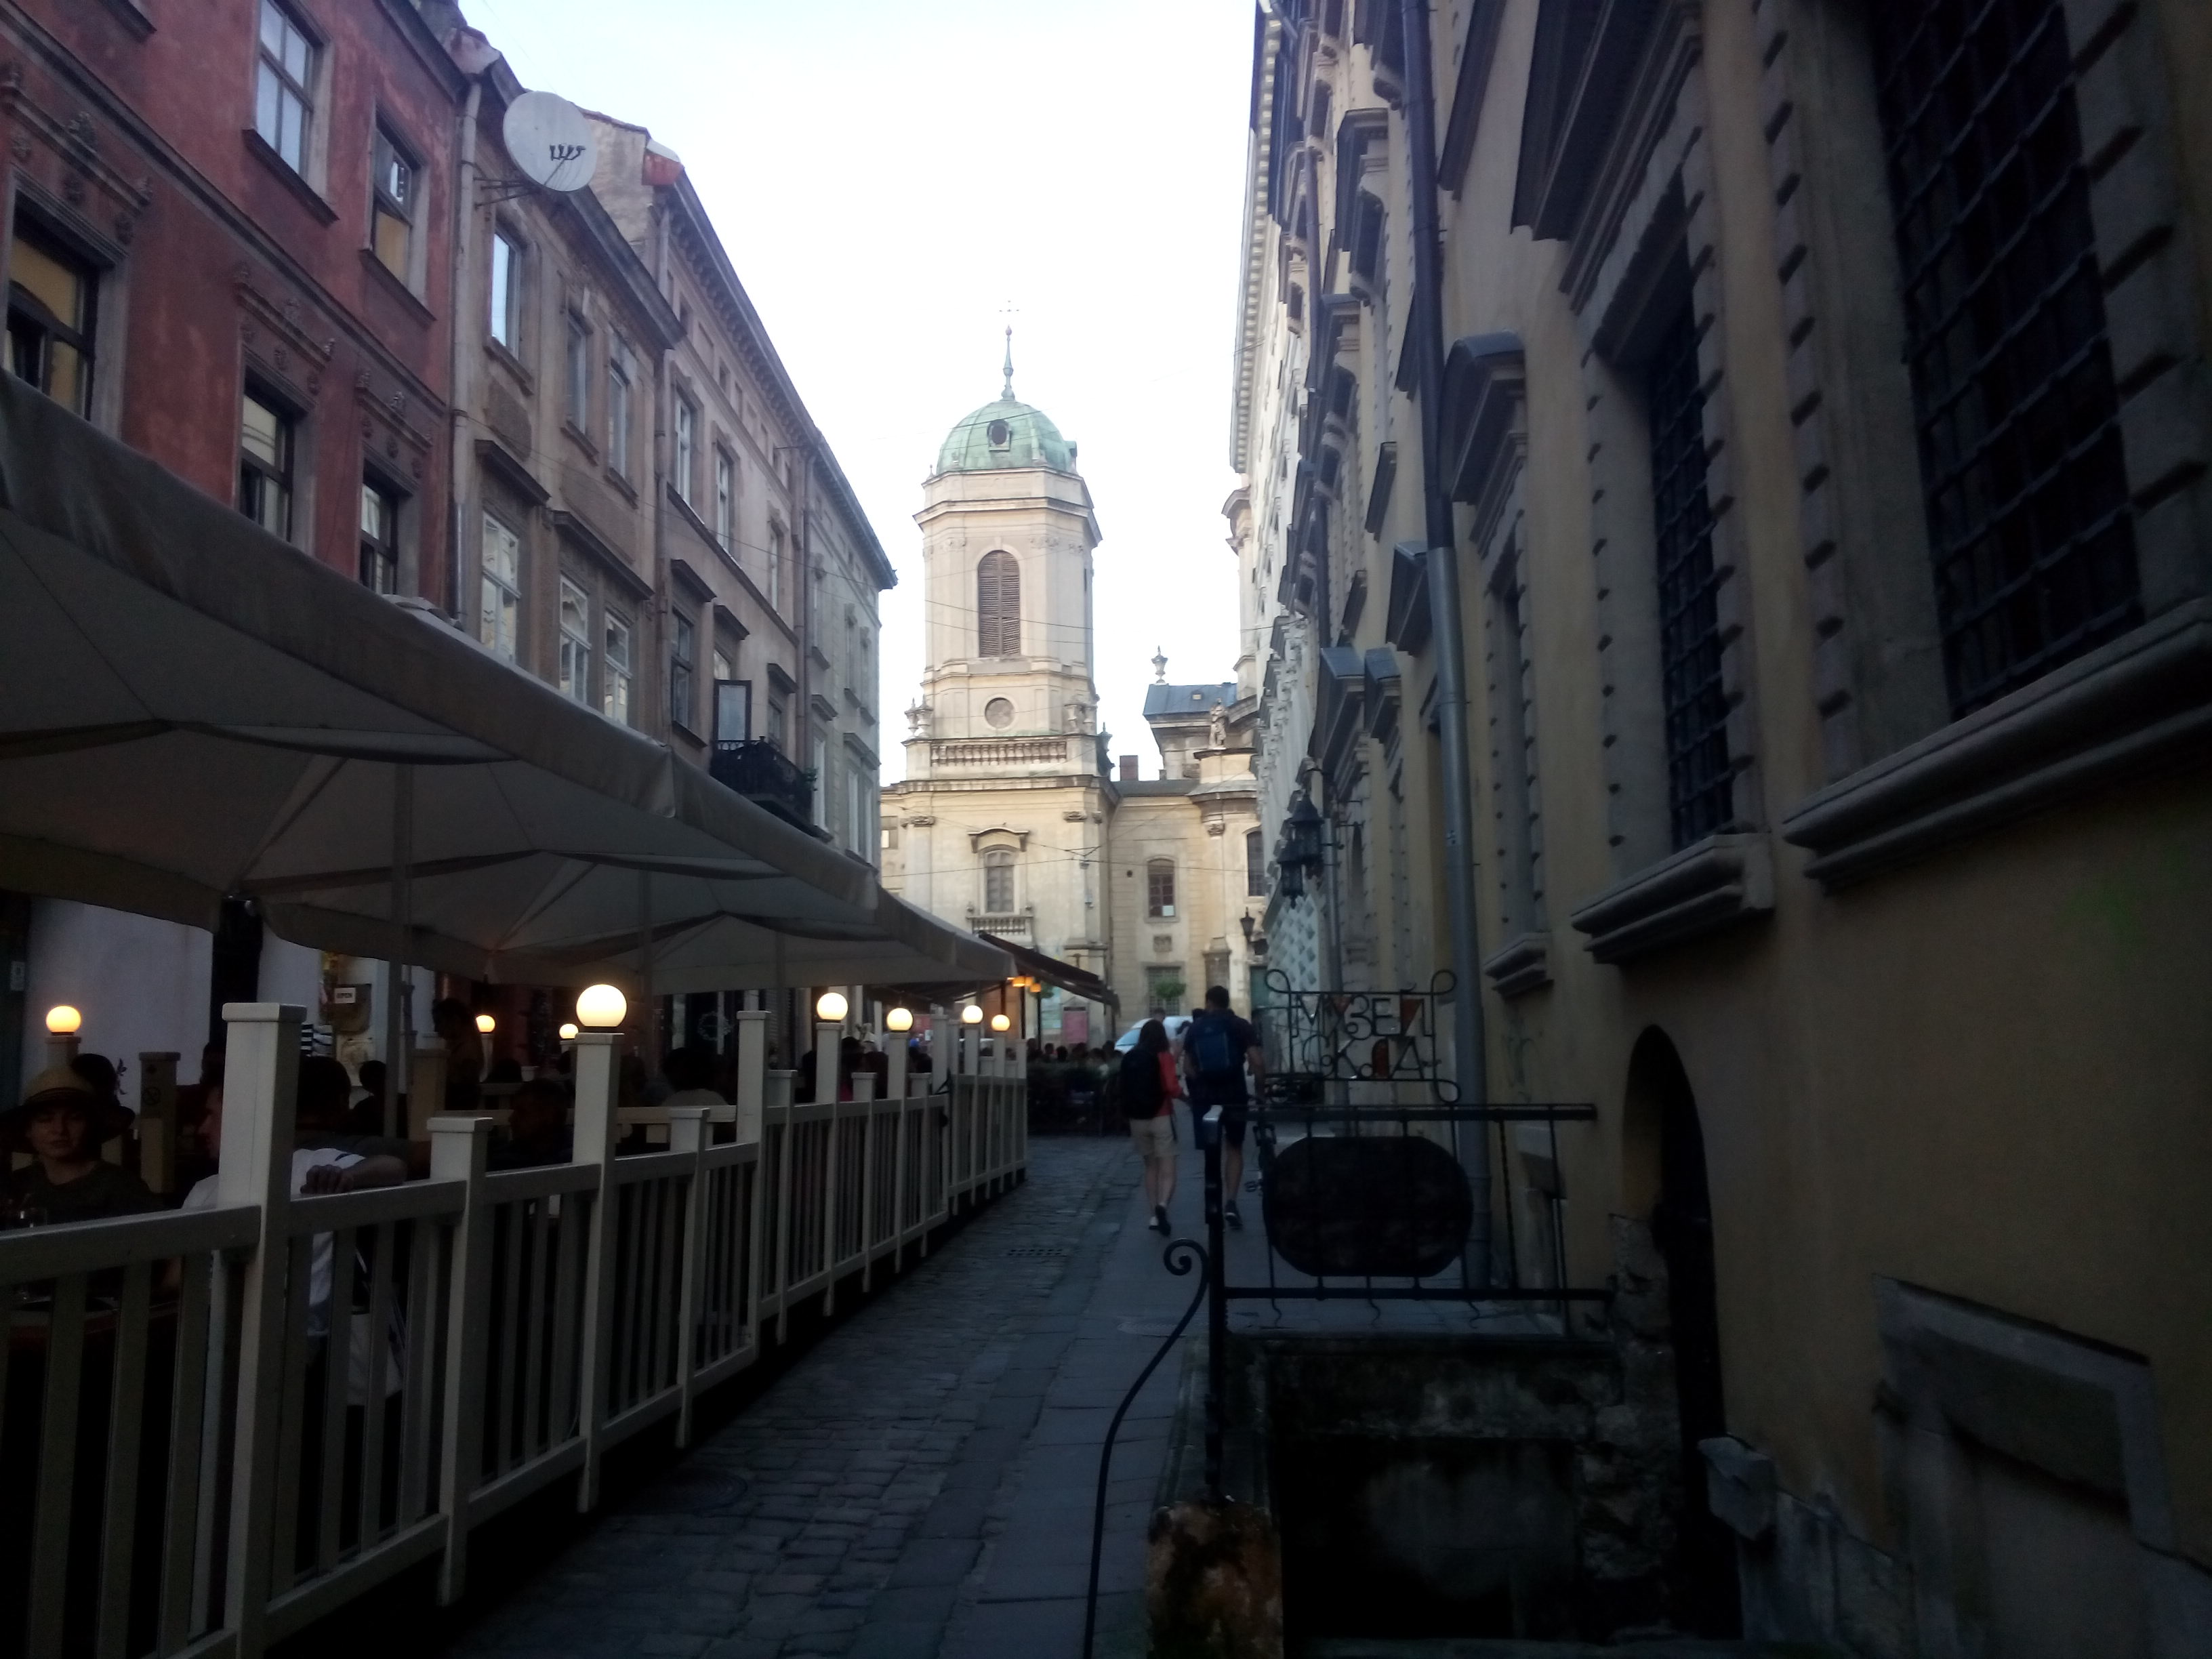 A narrow cobbled street with restaurant tables to the left and a domed church at the far end